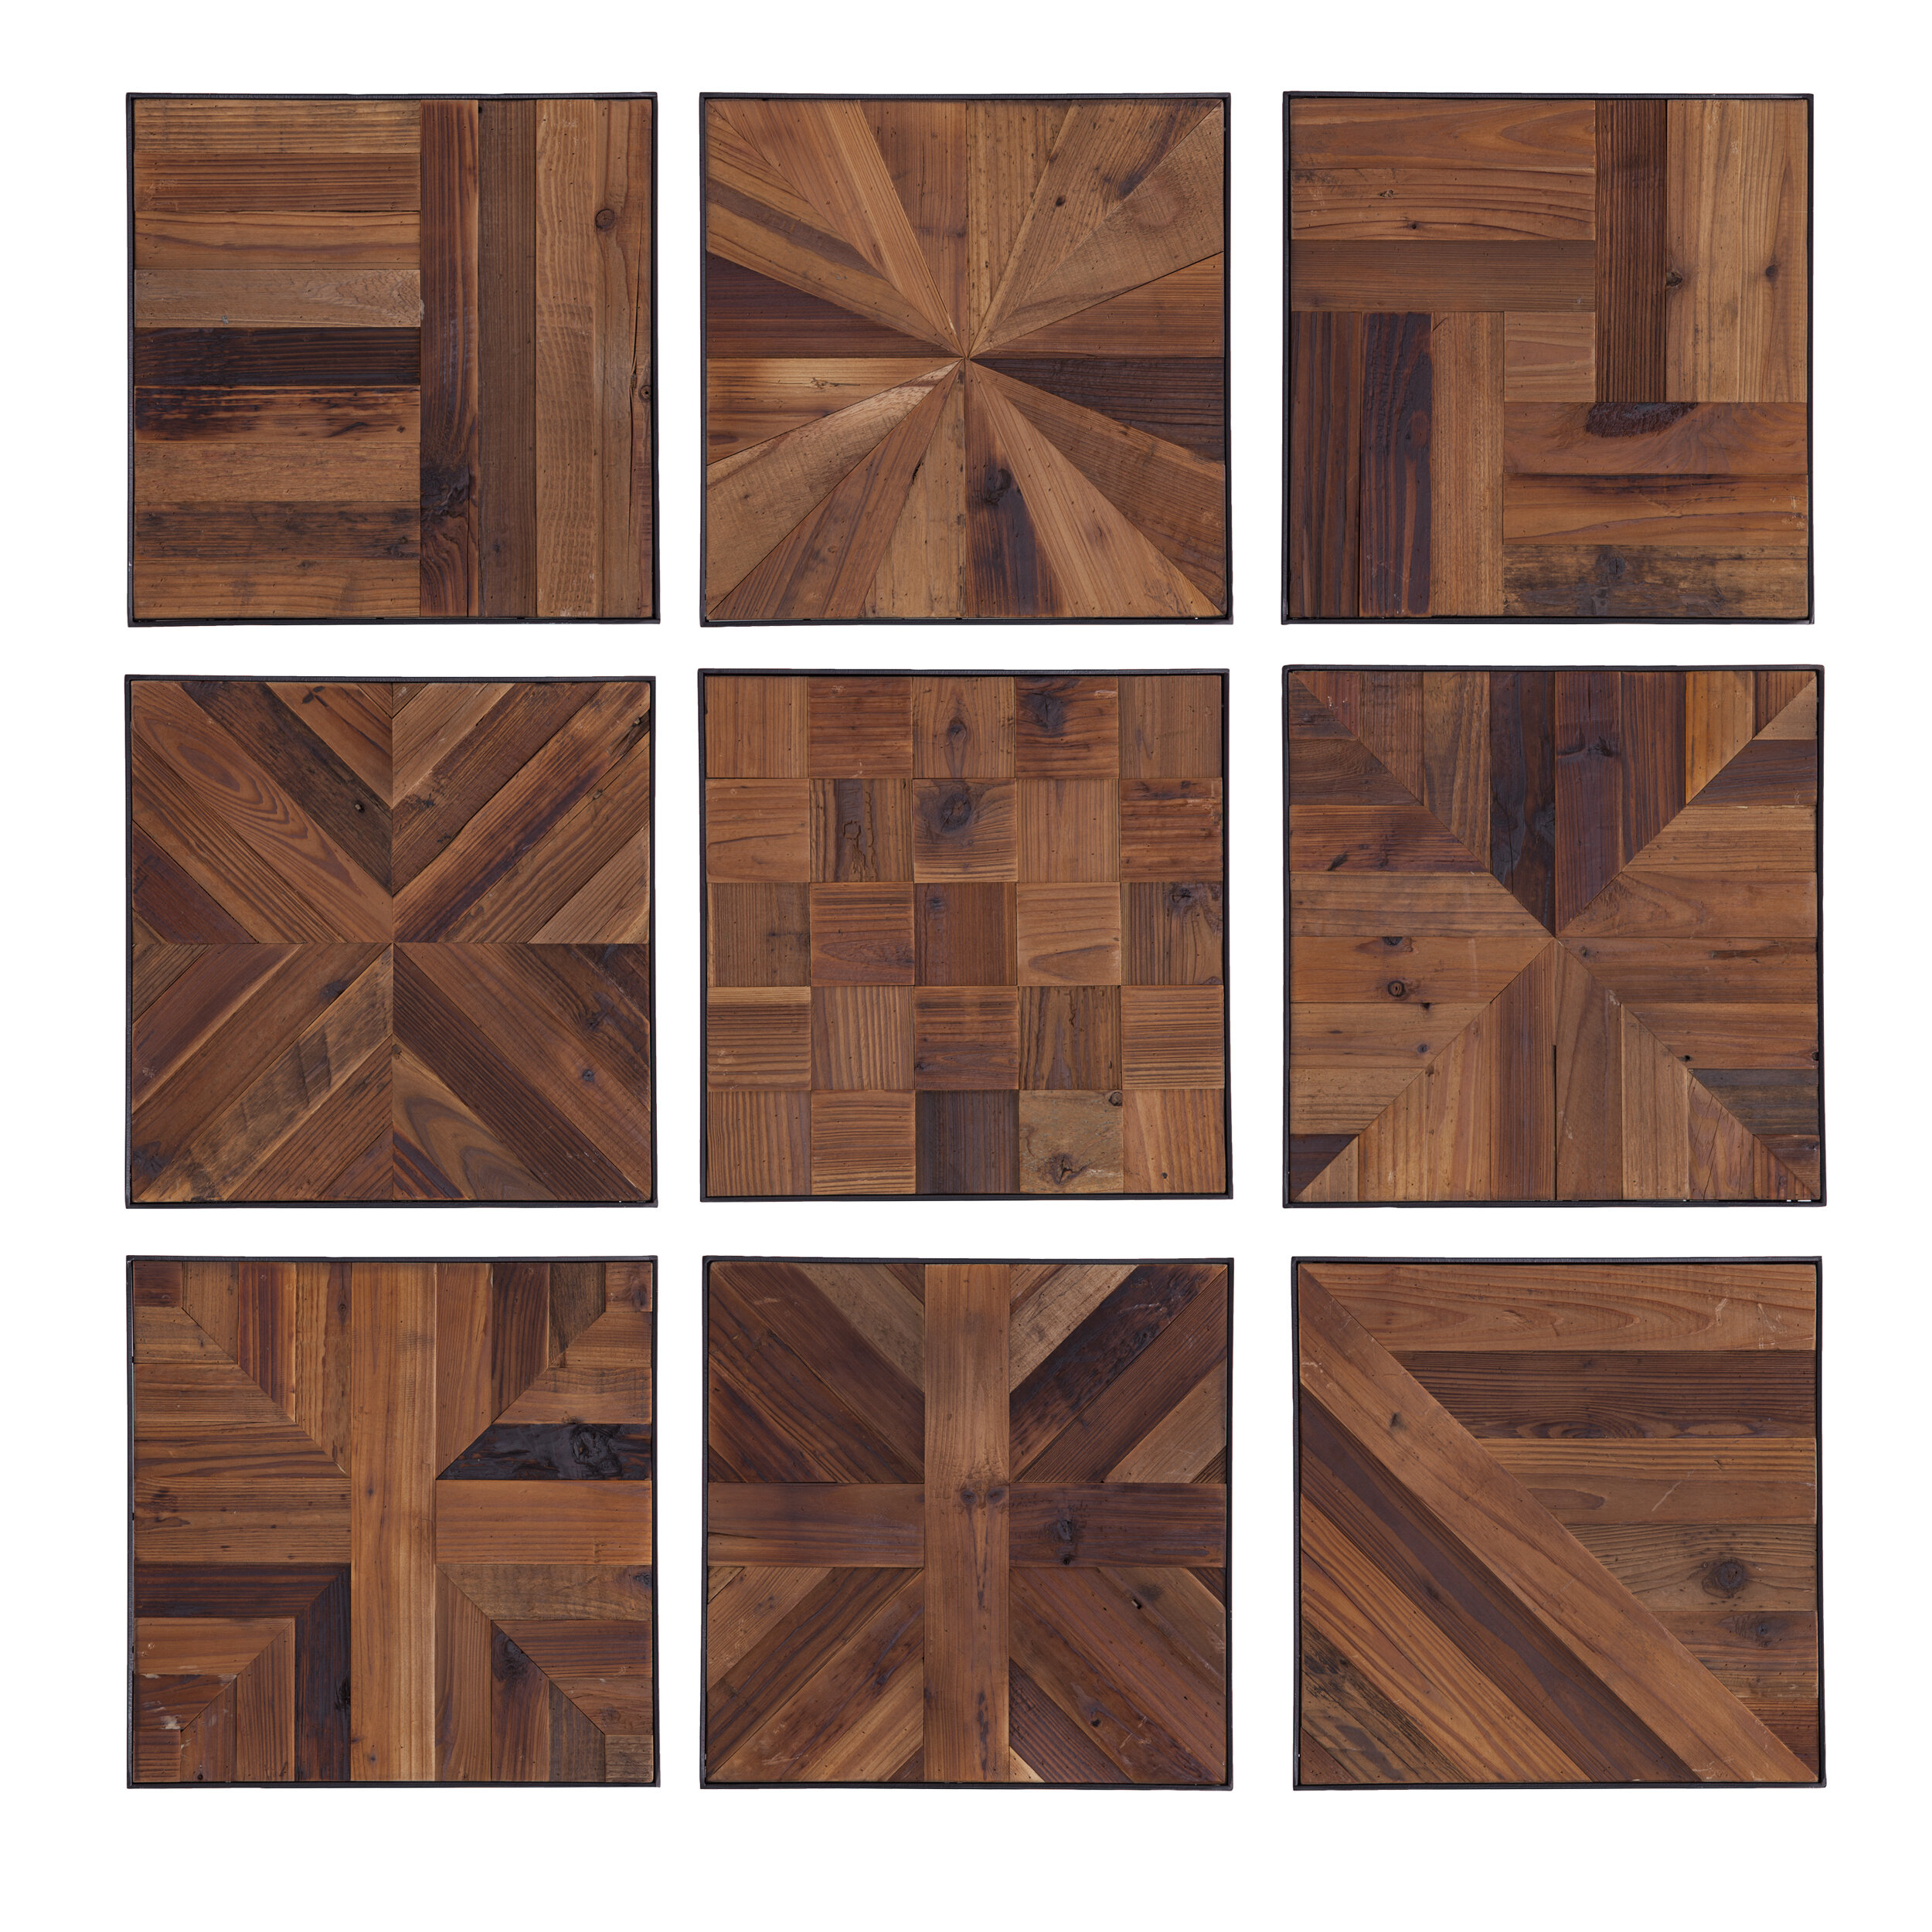 9 Piece Reclaimed Wood Wall Décor Set in 2 Piece Trigg Wall Decor Sets (Set of 2) (Image 7 of 30)